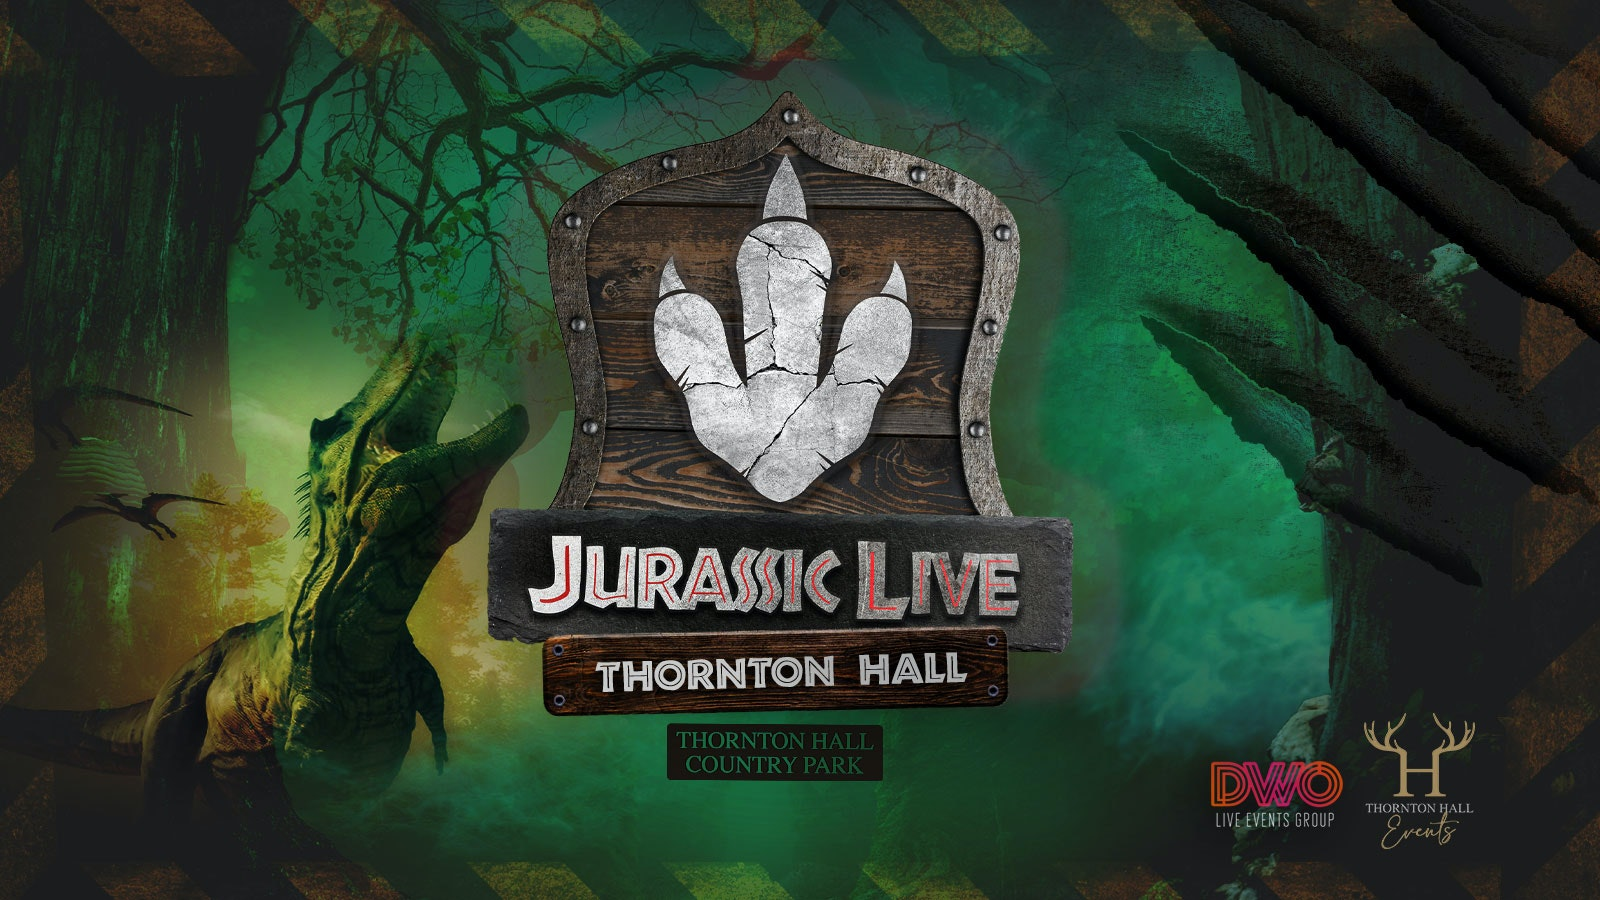 Jurassic Live – Wednesday 31st March – 10am